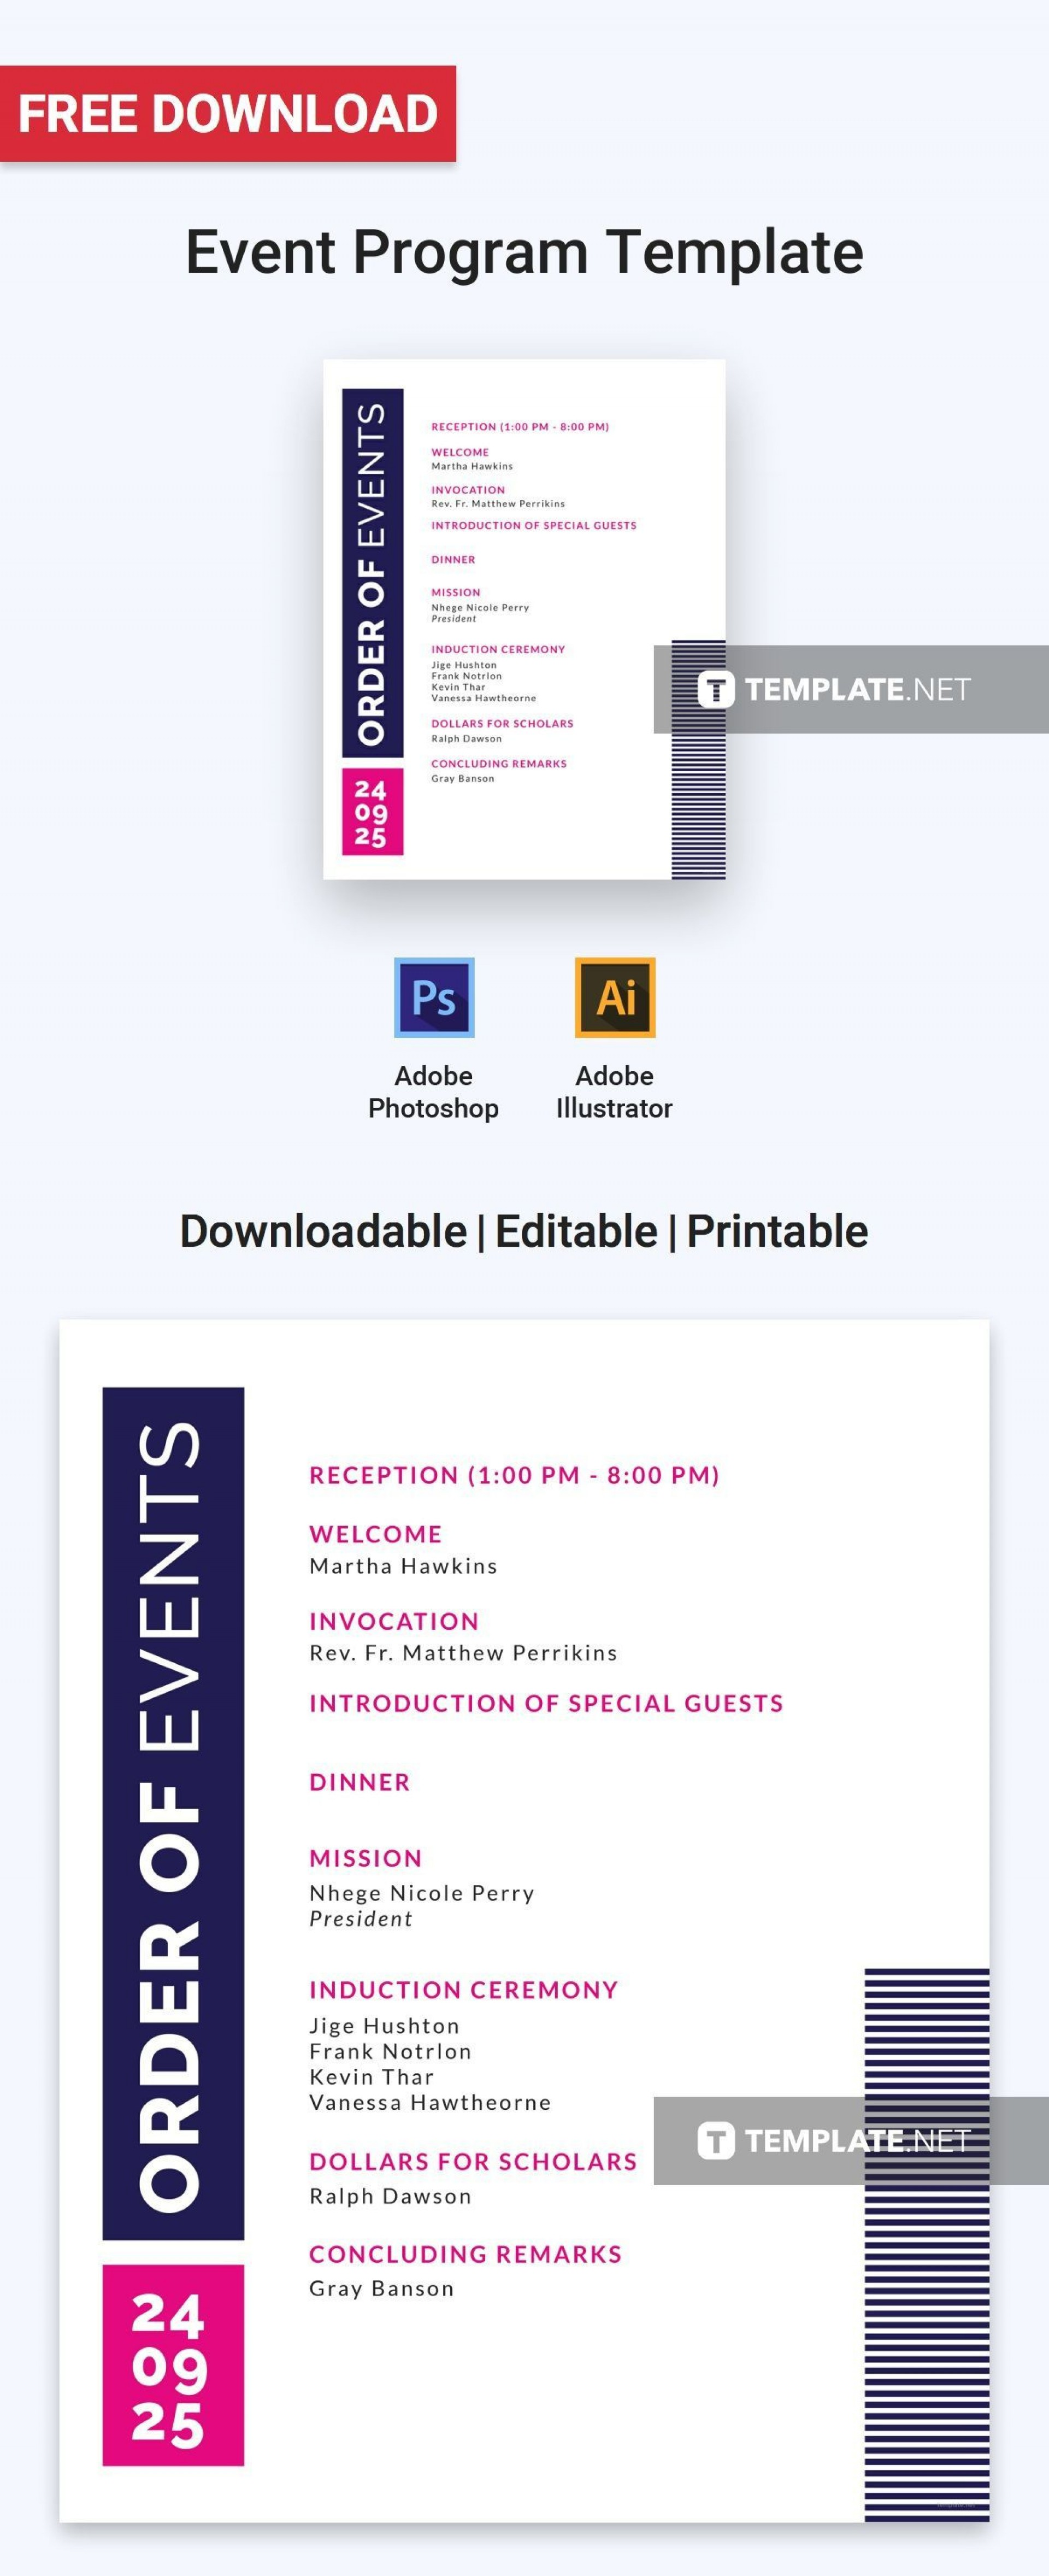 005 Unbelievable Printable Event Program Template High Definition  Free Download1920